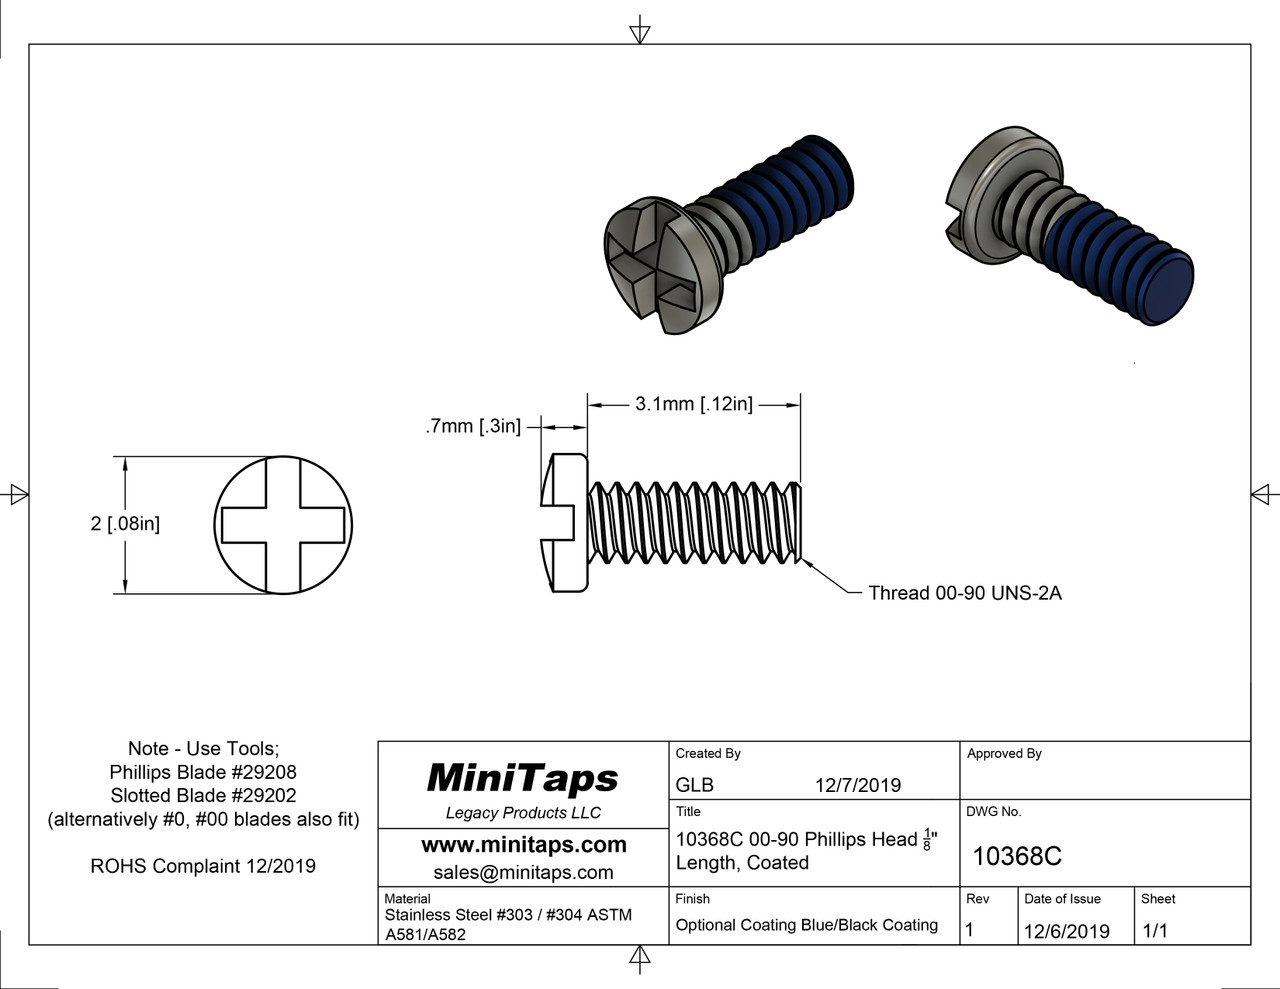 "Thread 00-90 2A Length, under bearing surface (head), 1/8"" (3.1mm) Machine Screw Pan Head with Cross Recessed typically called Philips and Slotted overall length 3.8mm, Head diameter maximum 0.078"" (2.00mm) stainless steel with Blue coated thread, packaged in 100 count package, Please note for orders ten units and above  (1,000/5,000 pieces) packaged in bulk plastic bag. Reference for specifications is ANSI/ASTM 18.6.3  The uncoated version see item #10368."